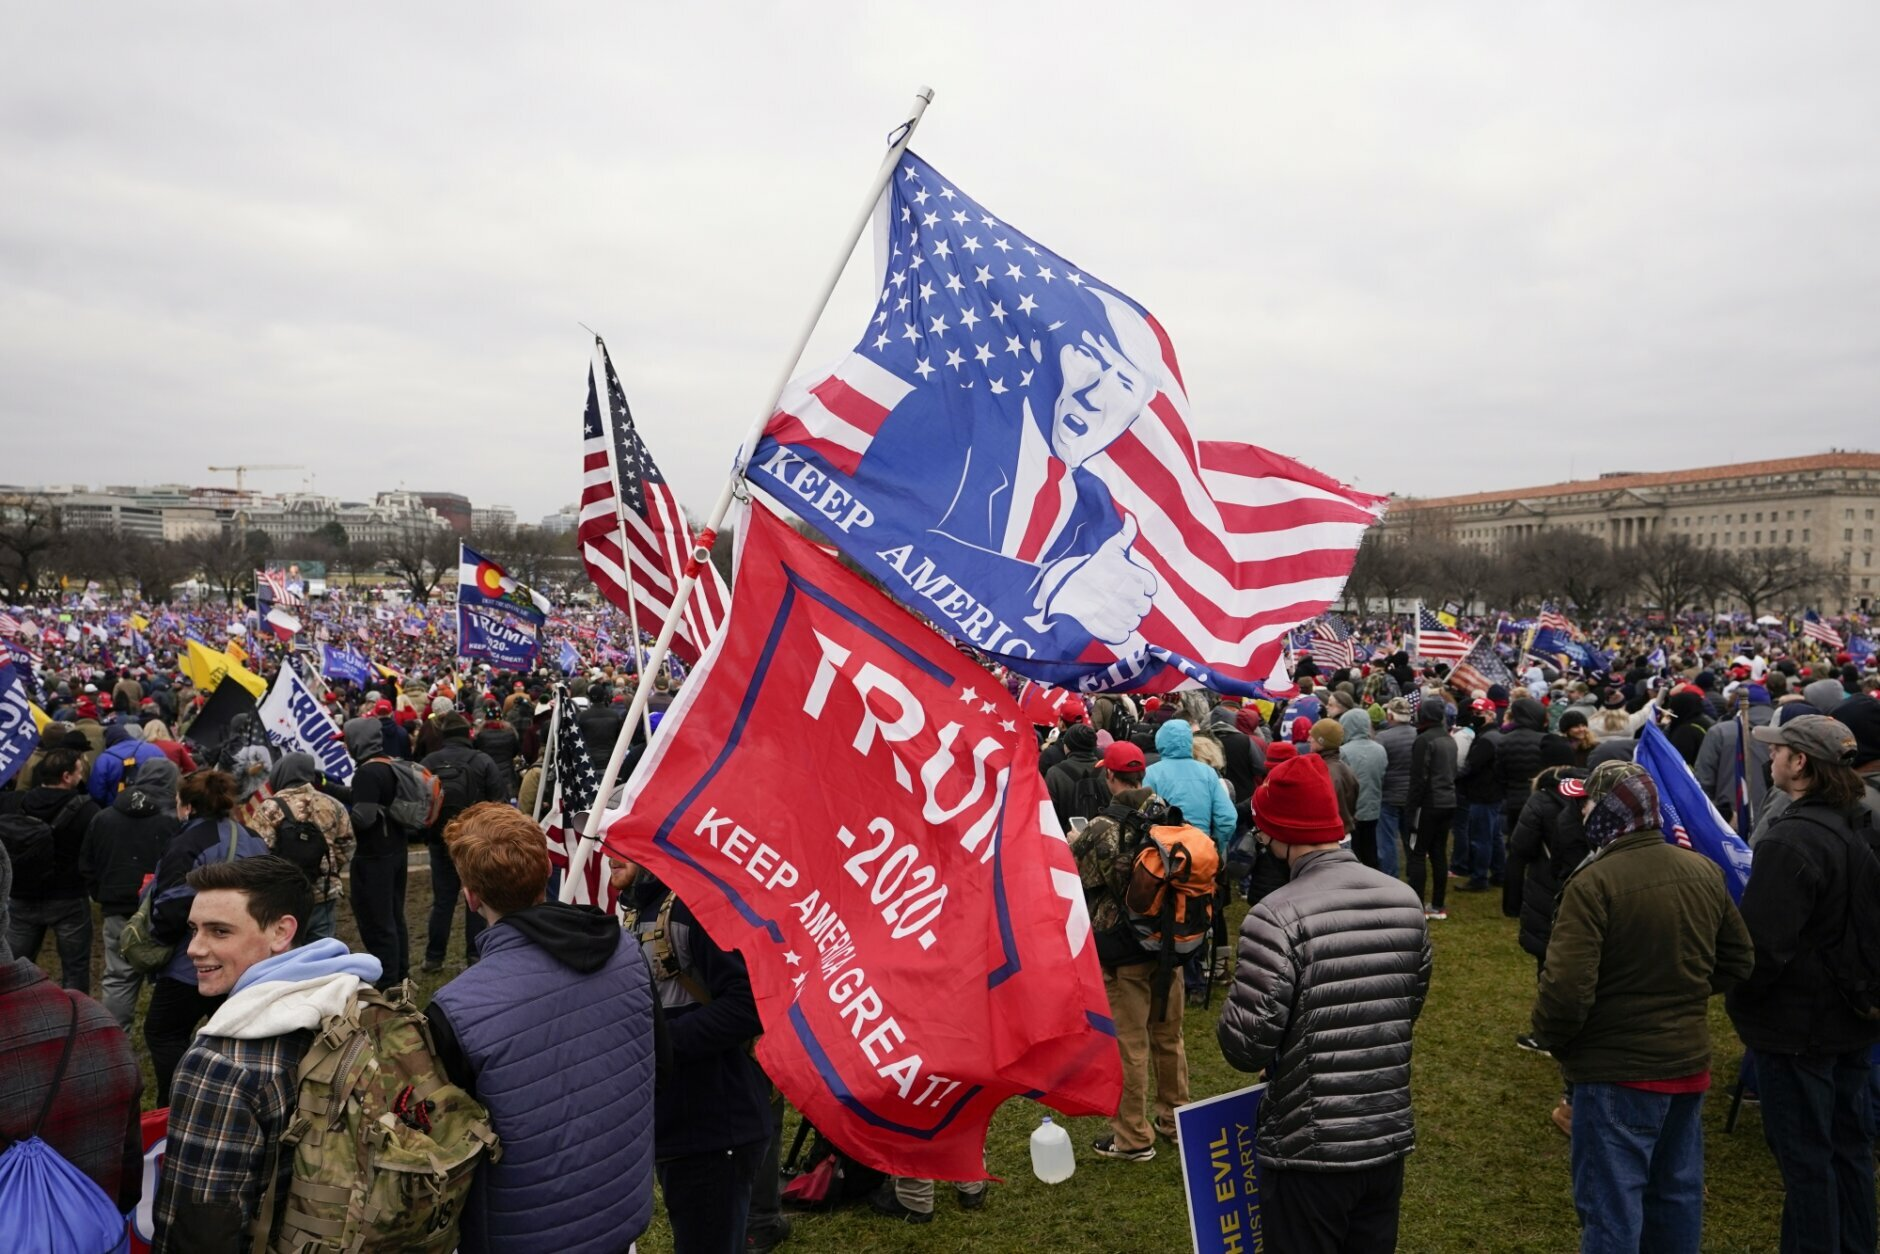 People attend a rally in Washington, Wednesday, Jan. 6, 2021, in support of President Donald Trump. (AP Photo/Carolyn Kaster)